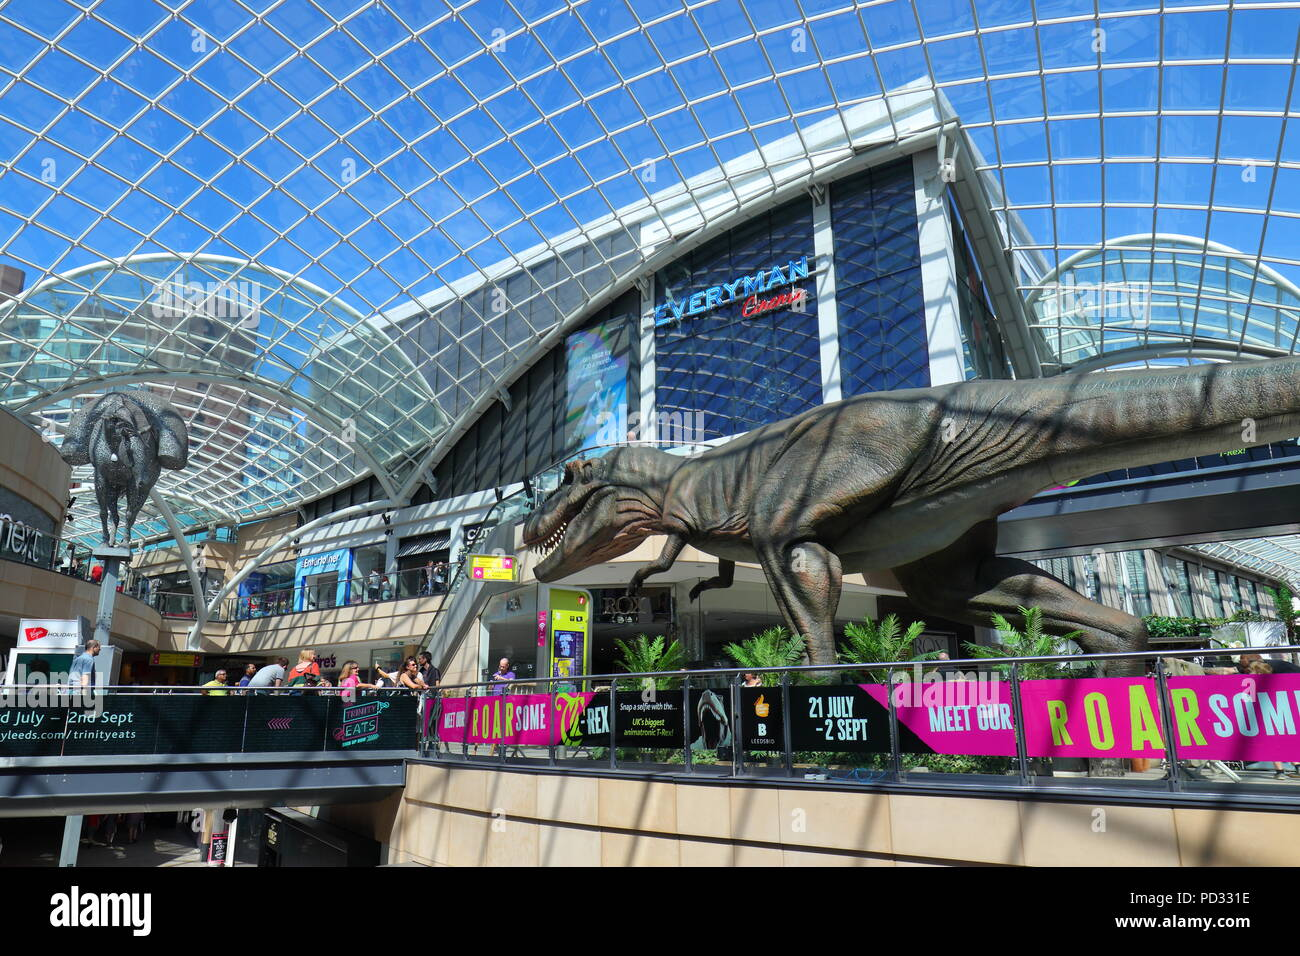 A life size Tyrannosaurus Rex has been installed in the Trinity Leeds Shopping Centre for visitors and customers to admire and take selfies. - Stock Image